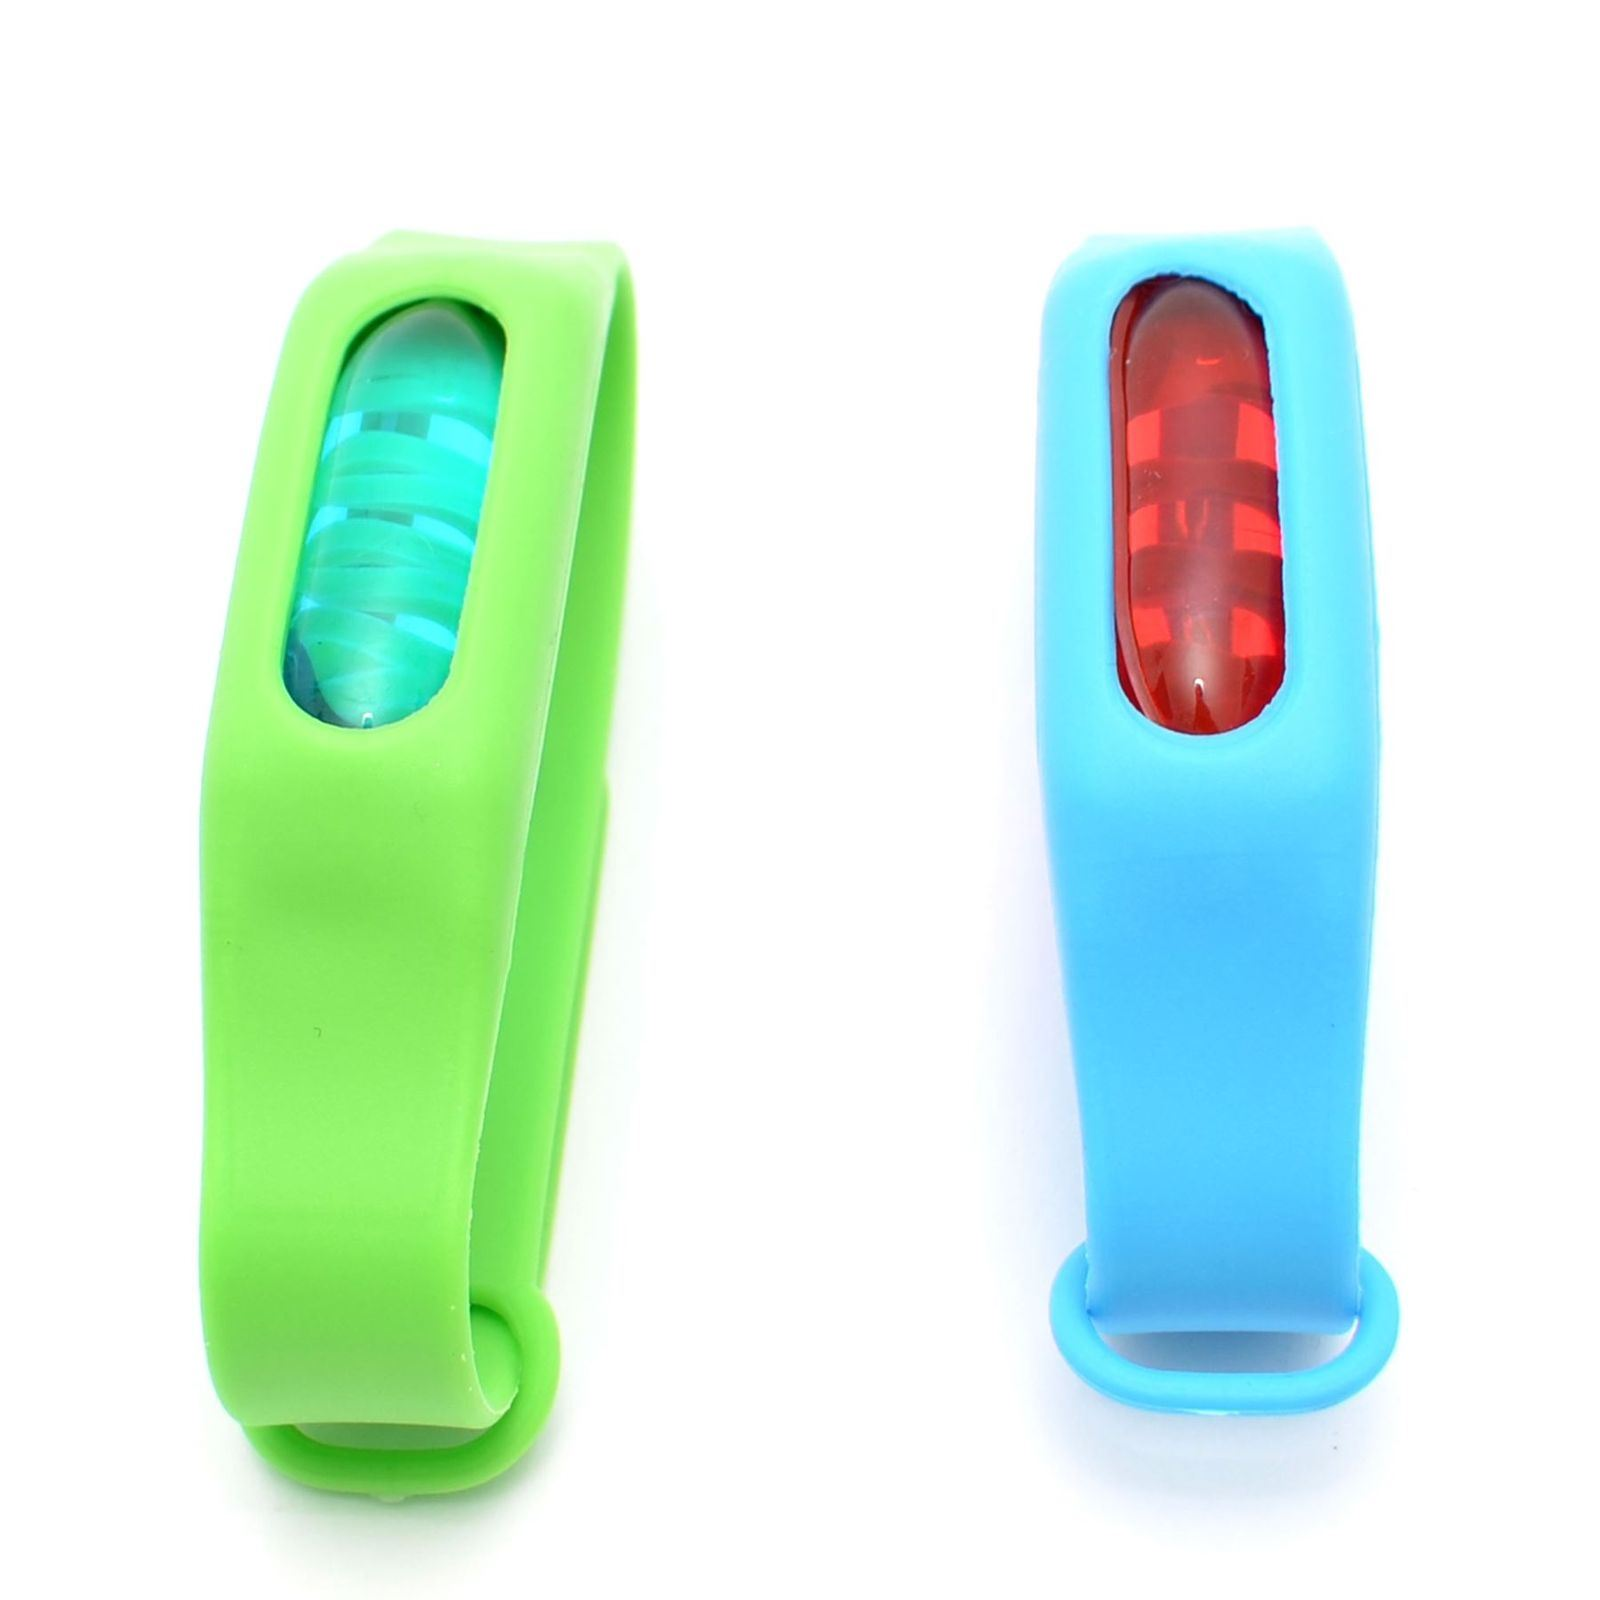 Anti-Mosquito-Bug-Insects-Repellent-Wrist-Band-Protection-Bracelets-Deet-Free thumbnail 5